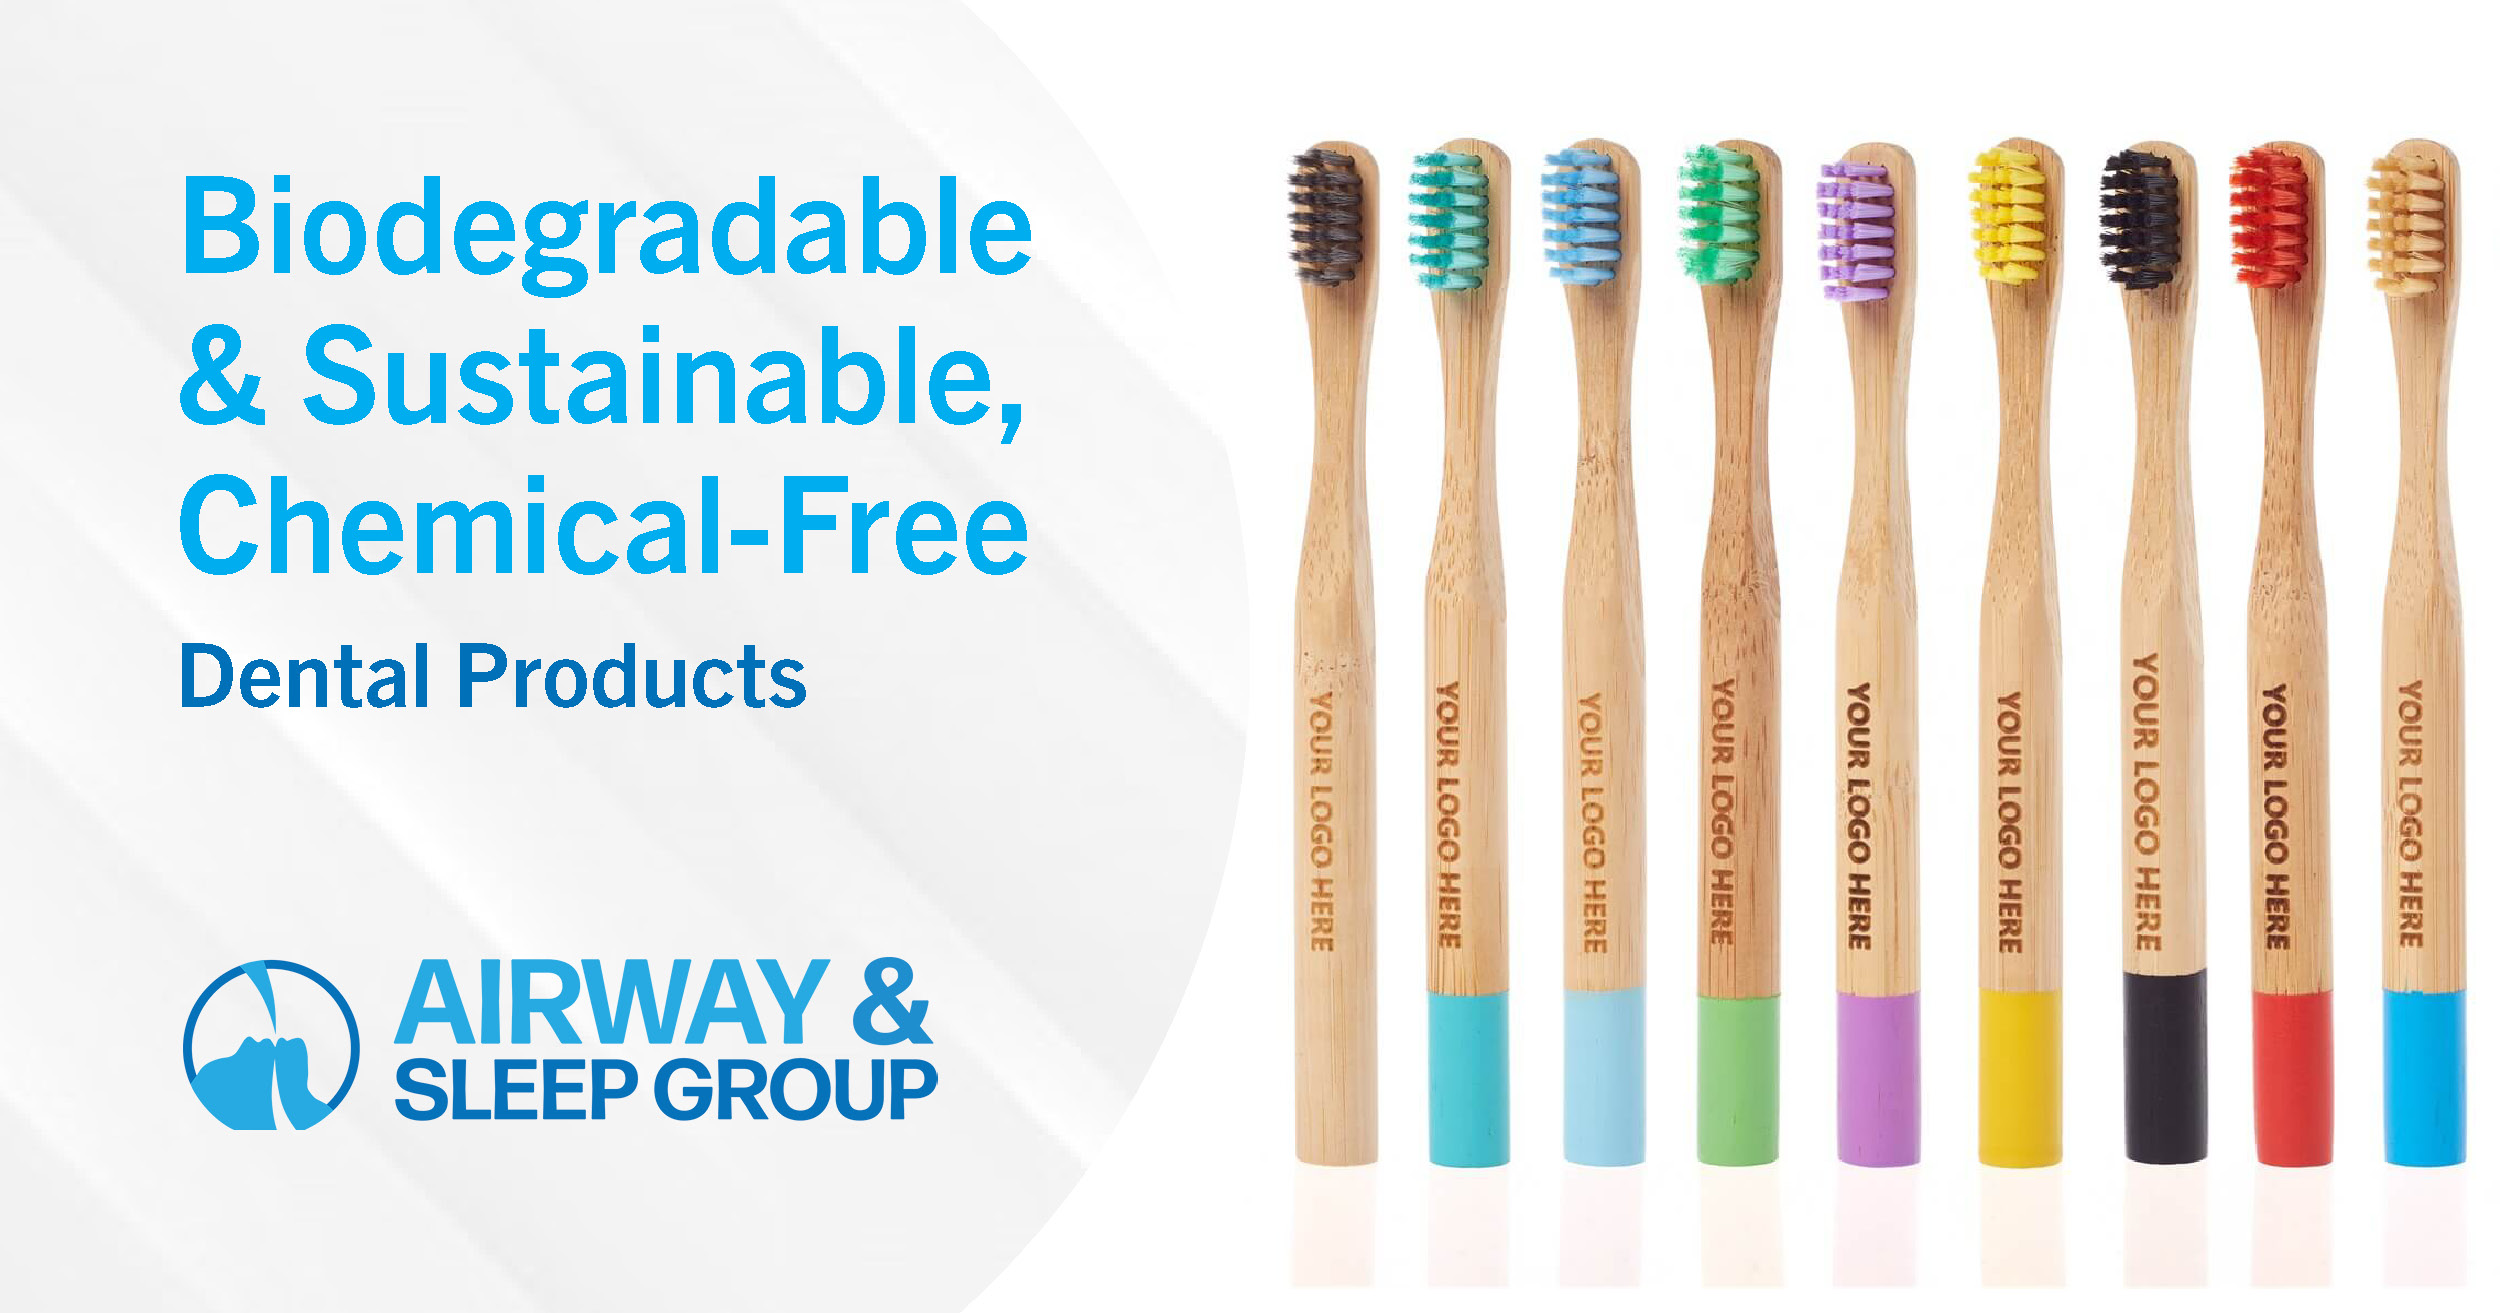 Biodegradable & Sustainable, Chemical-Free Dental Products